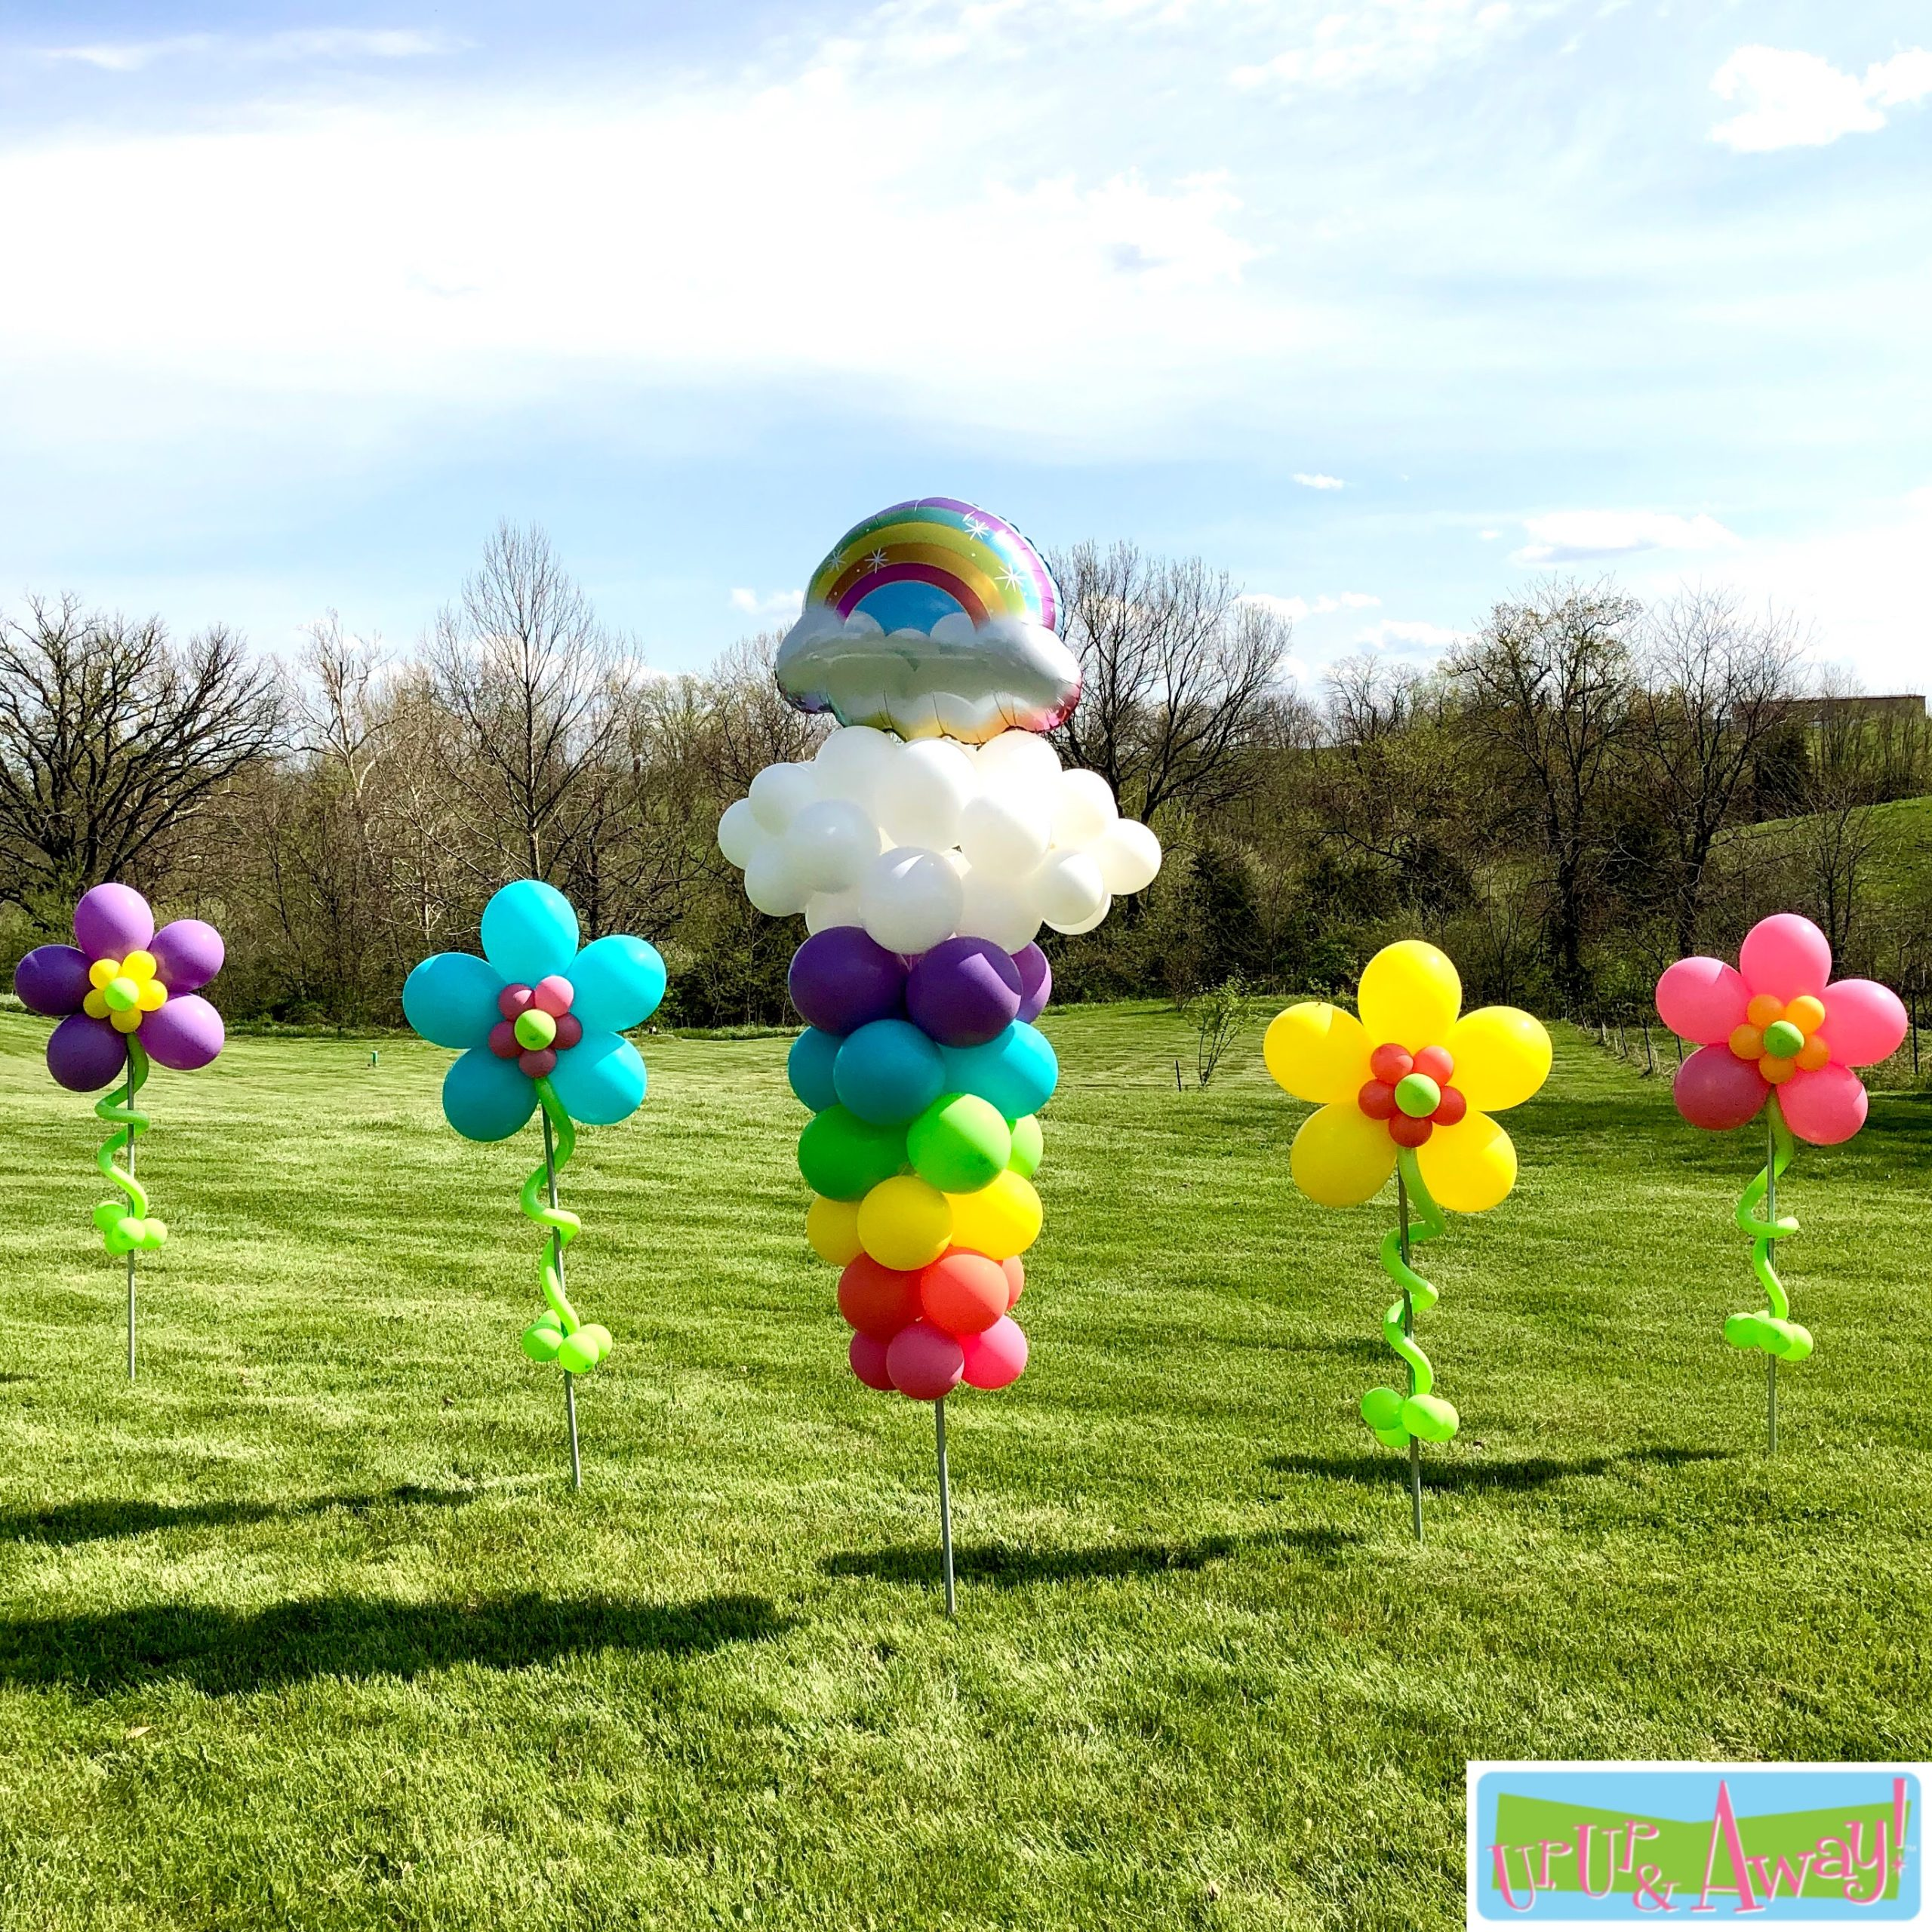 Rainbow Garden | Up, Up & Away! Balloons